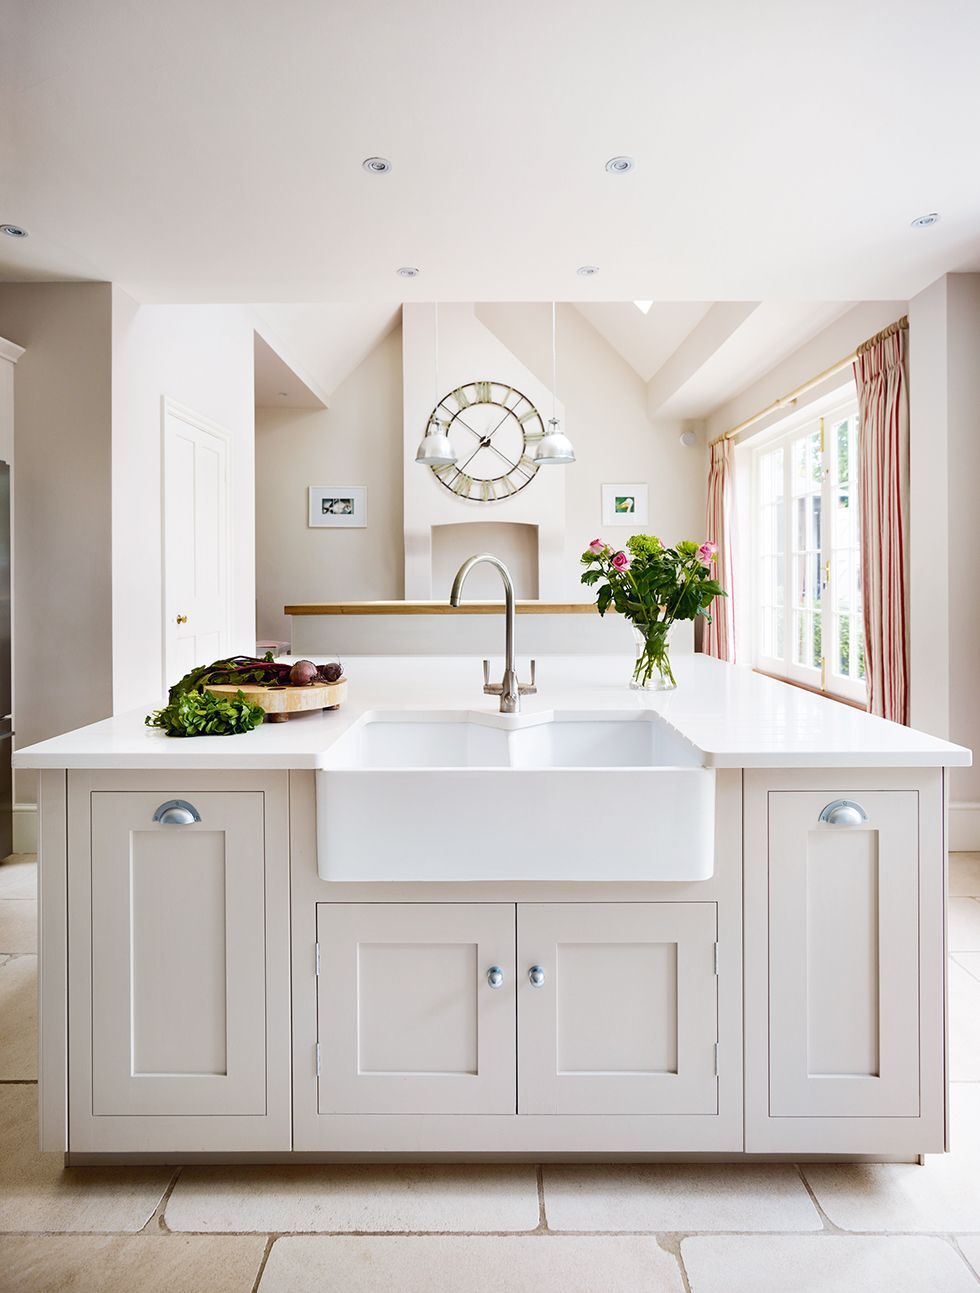 Harvey Jones Shaker kitchen with white and large